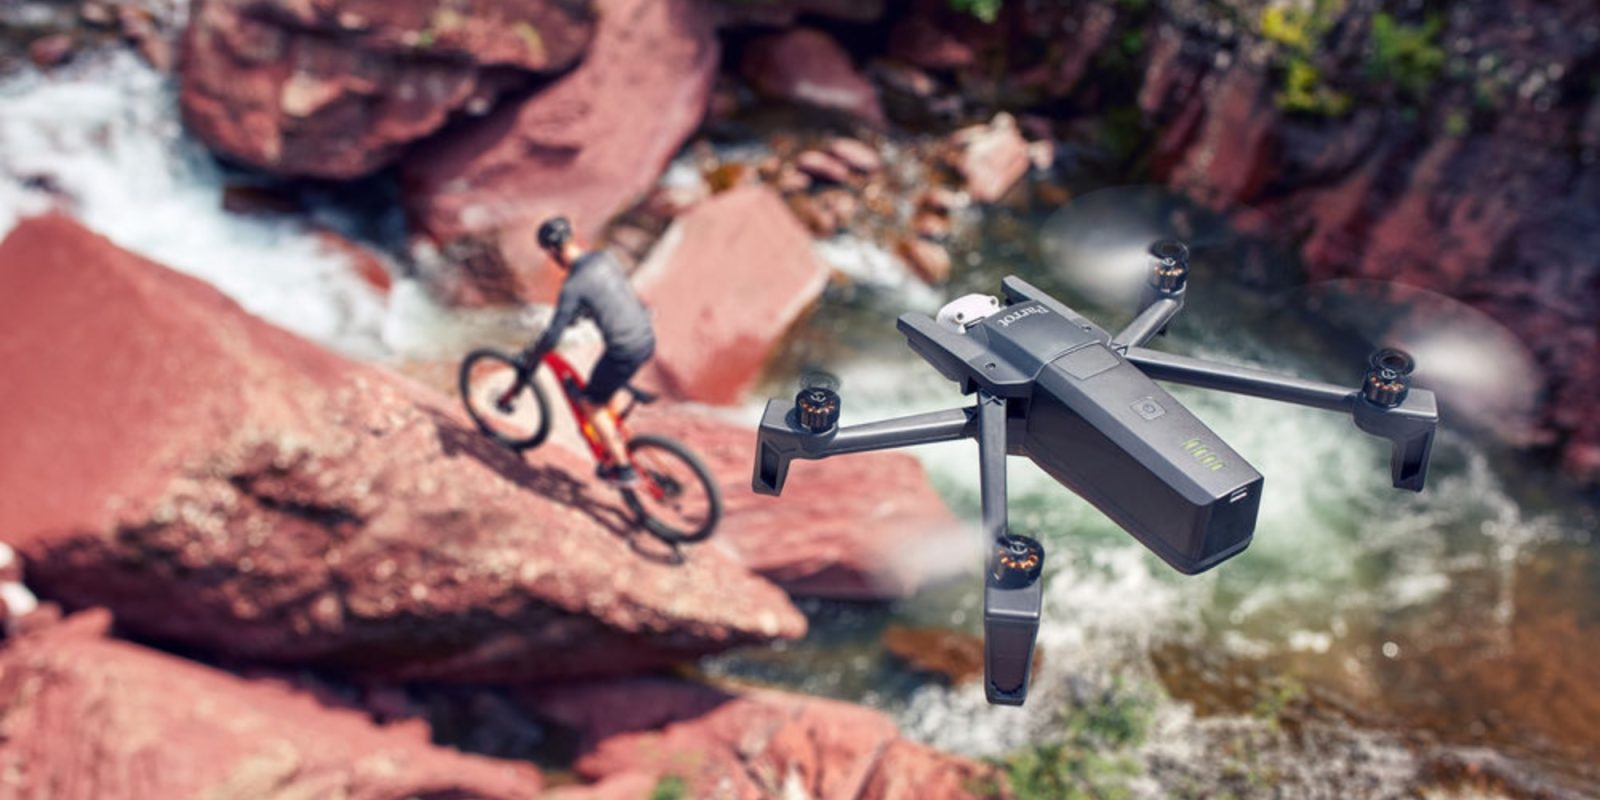 Parrot's $446 Anafi Quadcopter is ideal for aerial photography with a 4K HDR camera (Reg. $560)